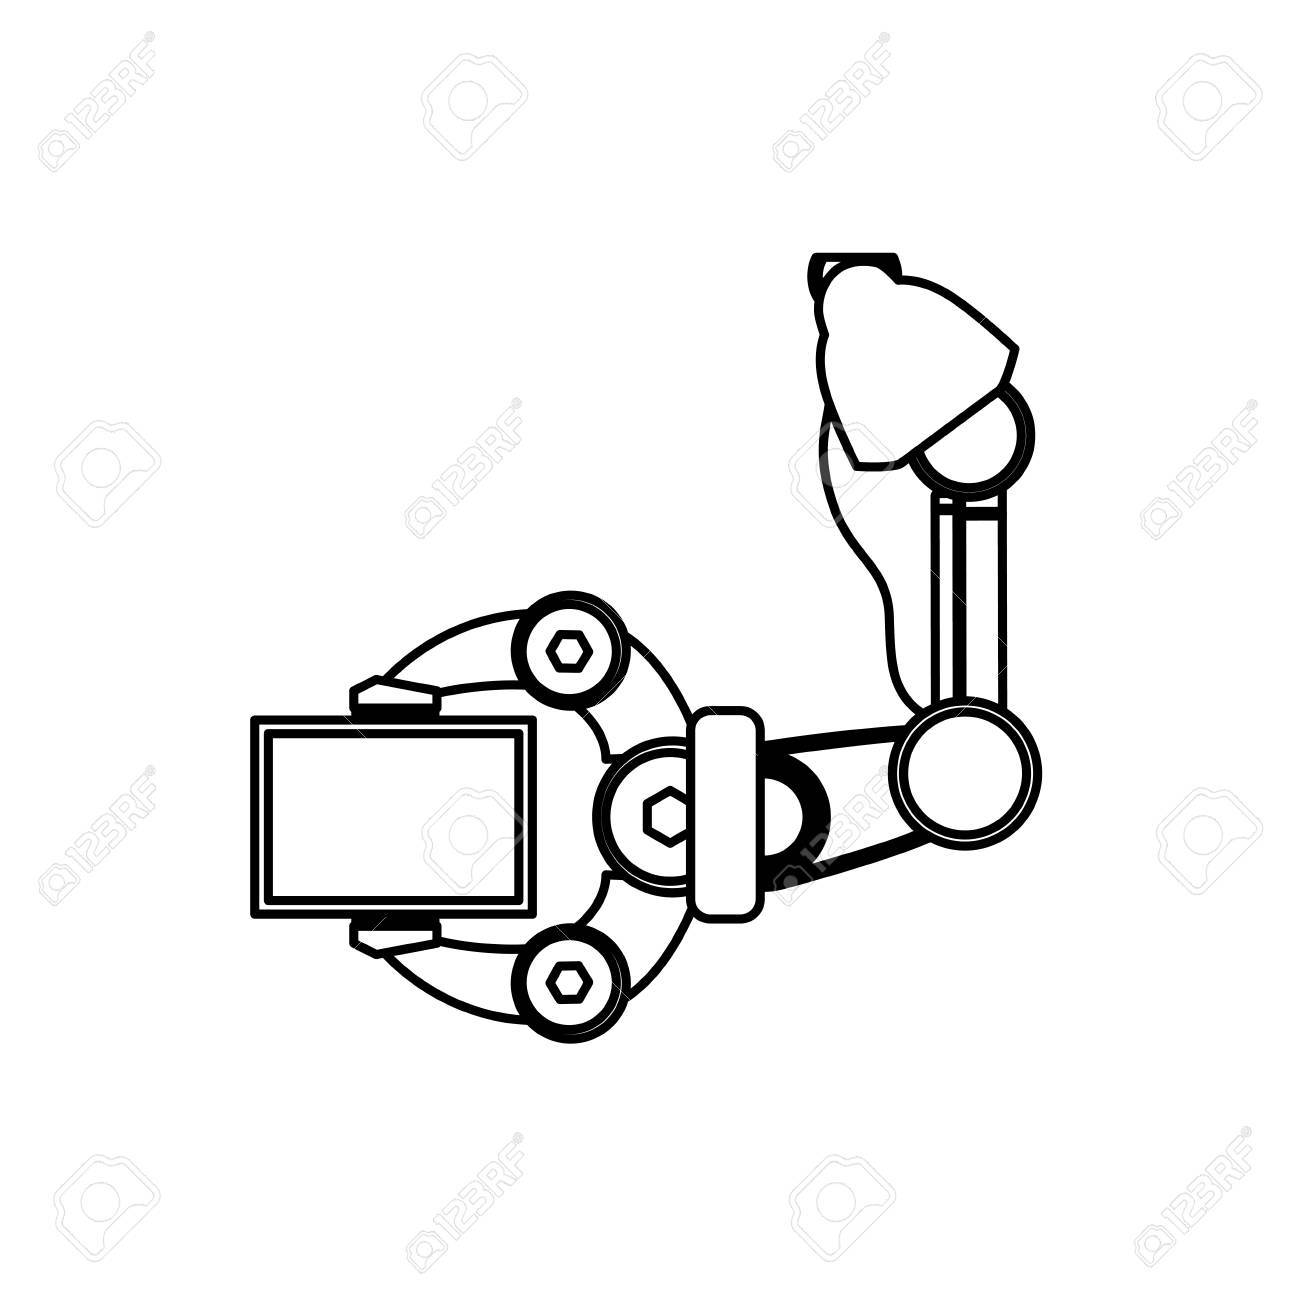 Robotic Arm Technology Icon Vector Illustration Graphic Design